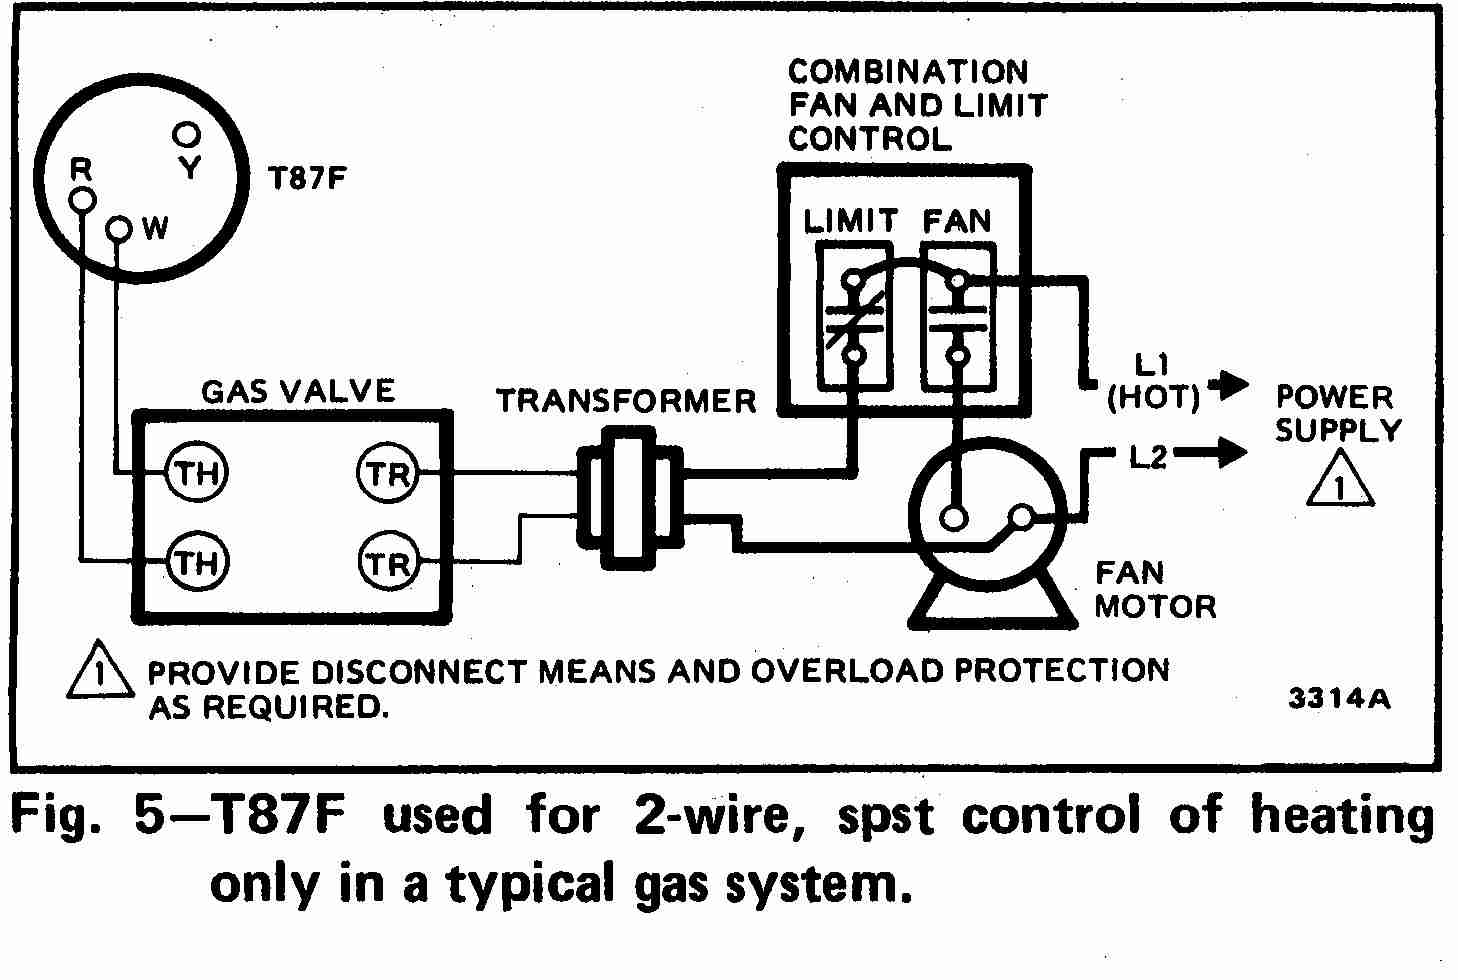 TT_T87F_0002_2Wg_DJF room thermostat wiring diagrams for hvac systems electric thermostat wiring diagram at soozxer.org